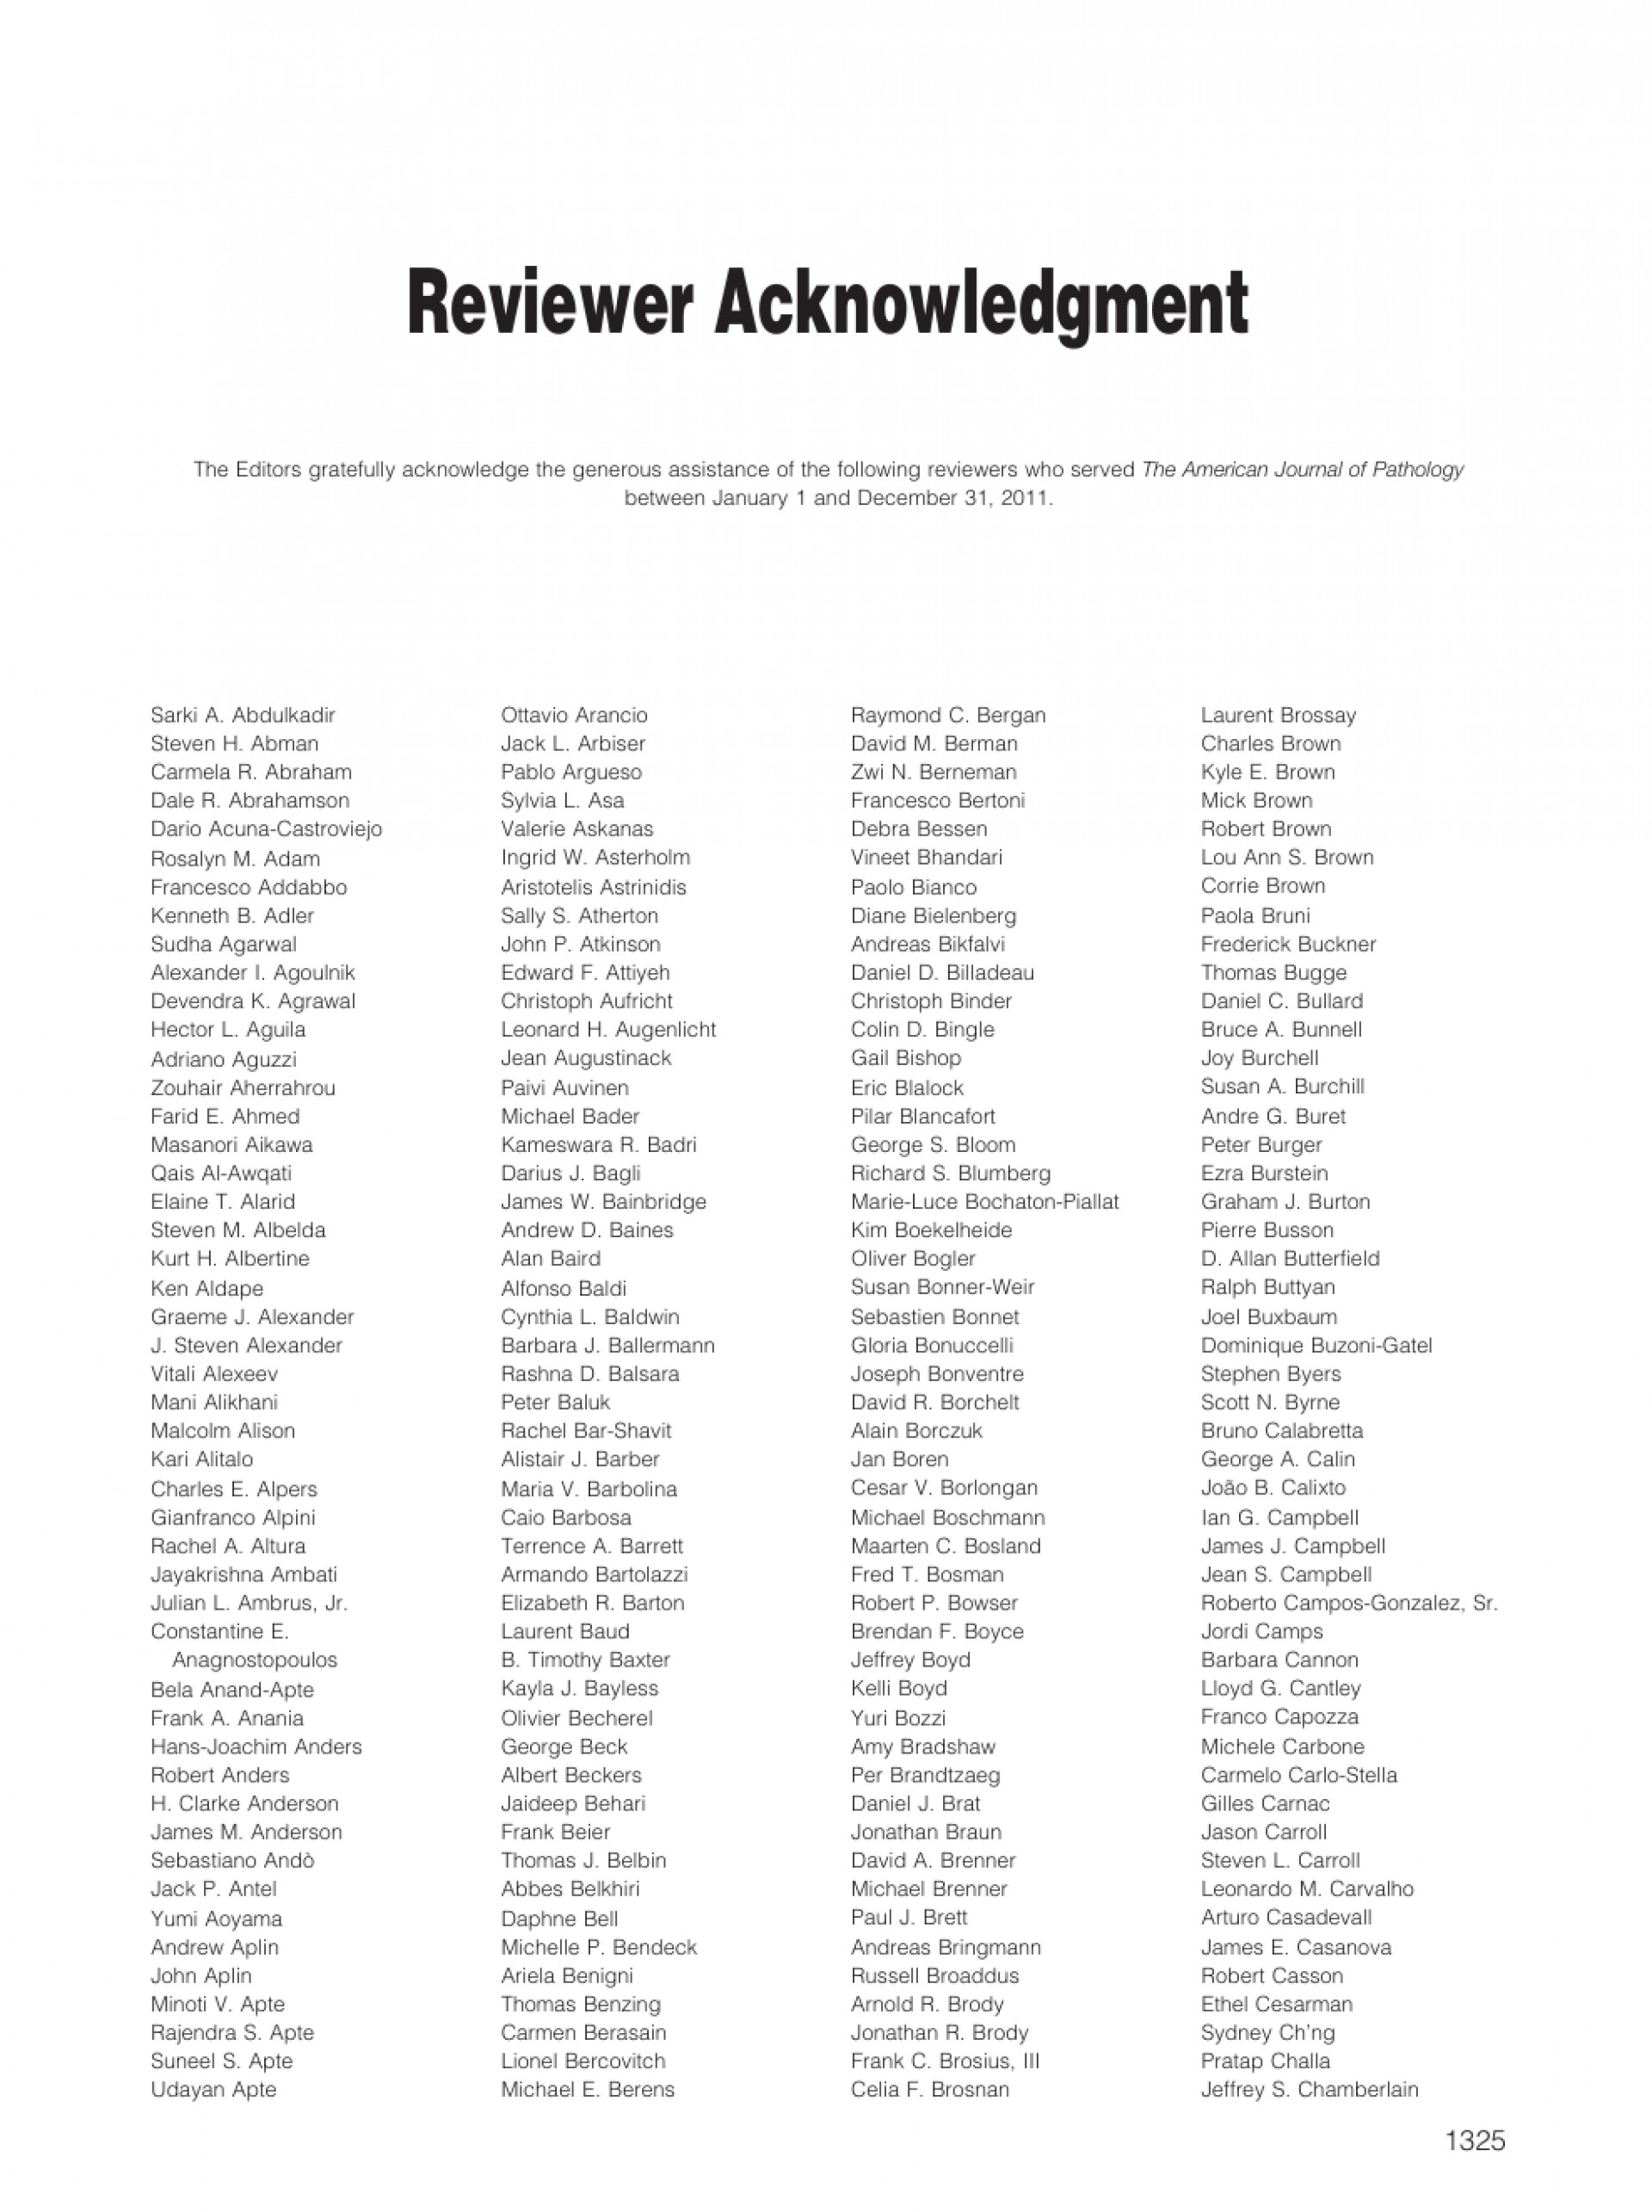 012 Acknowledgement Example For Research Rare Paper Pdf 1920